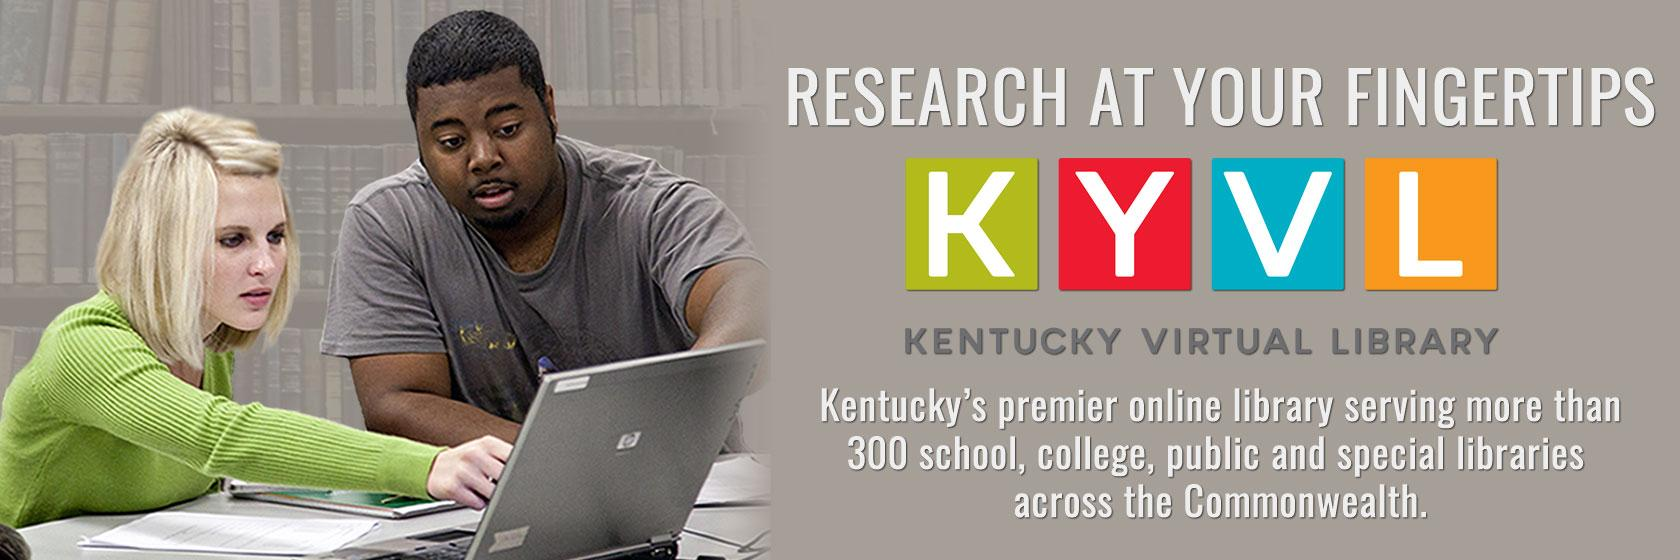 Learn about Kentucky's virtual network of libraries and library resources.